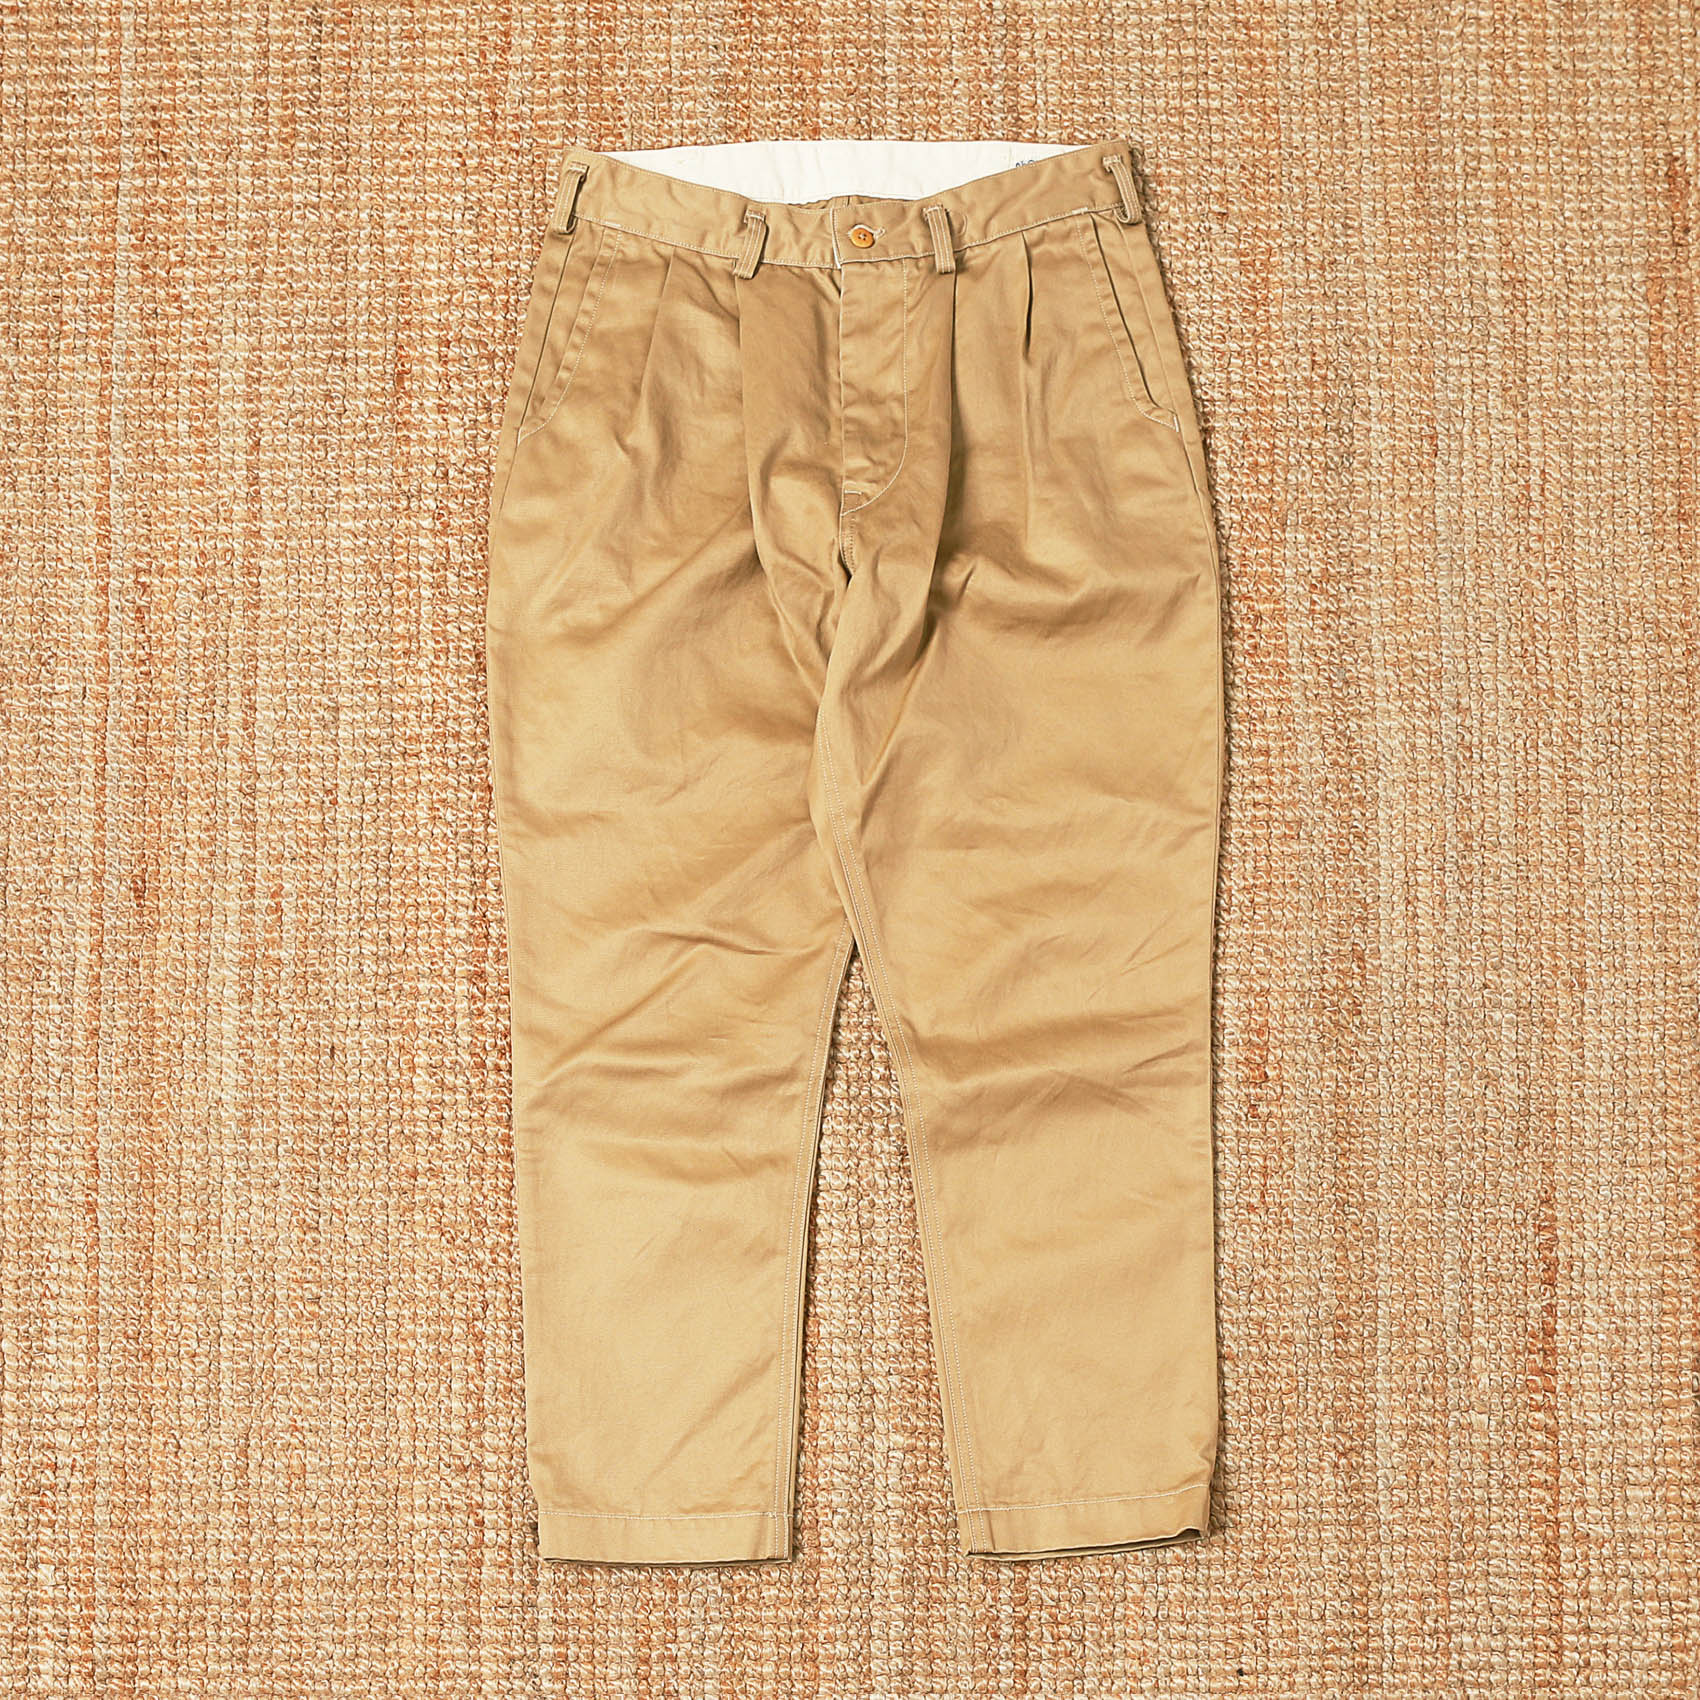 ORSLOW BILLY JEAN CHINO PANTS